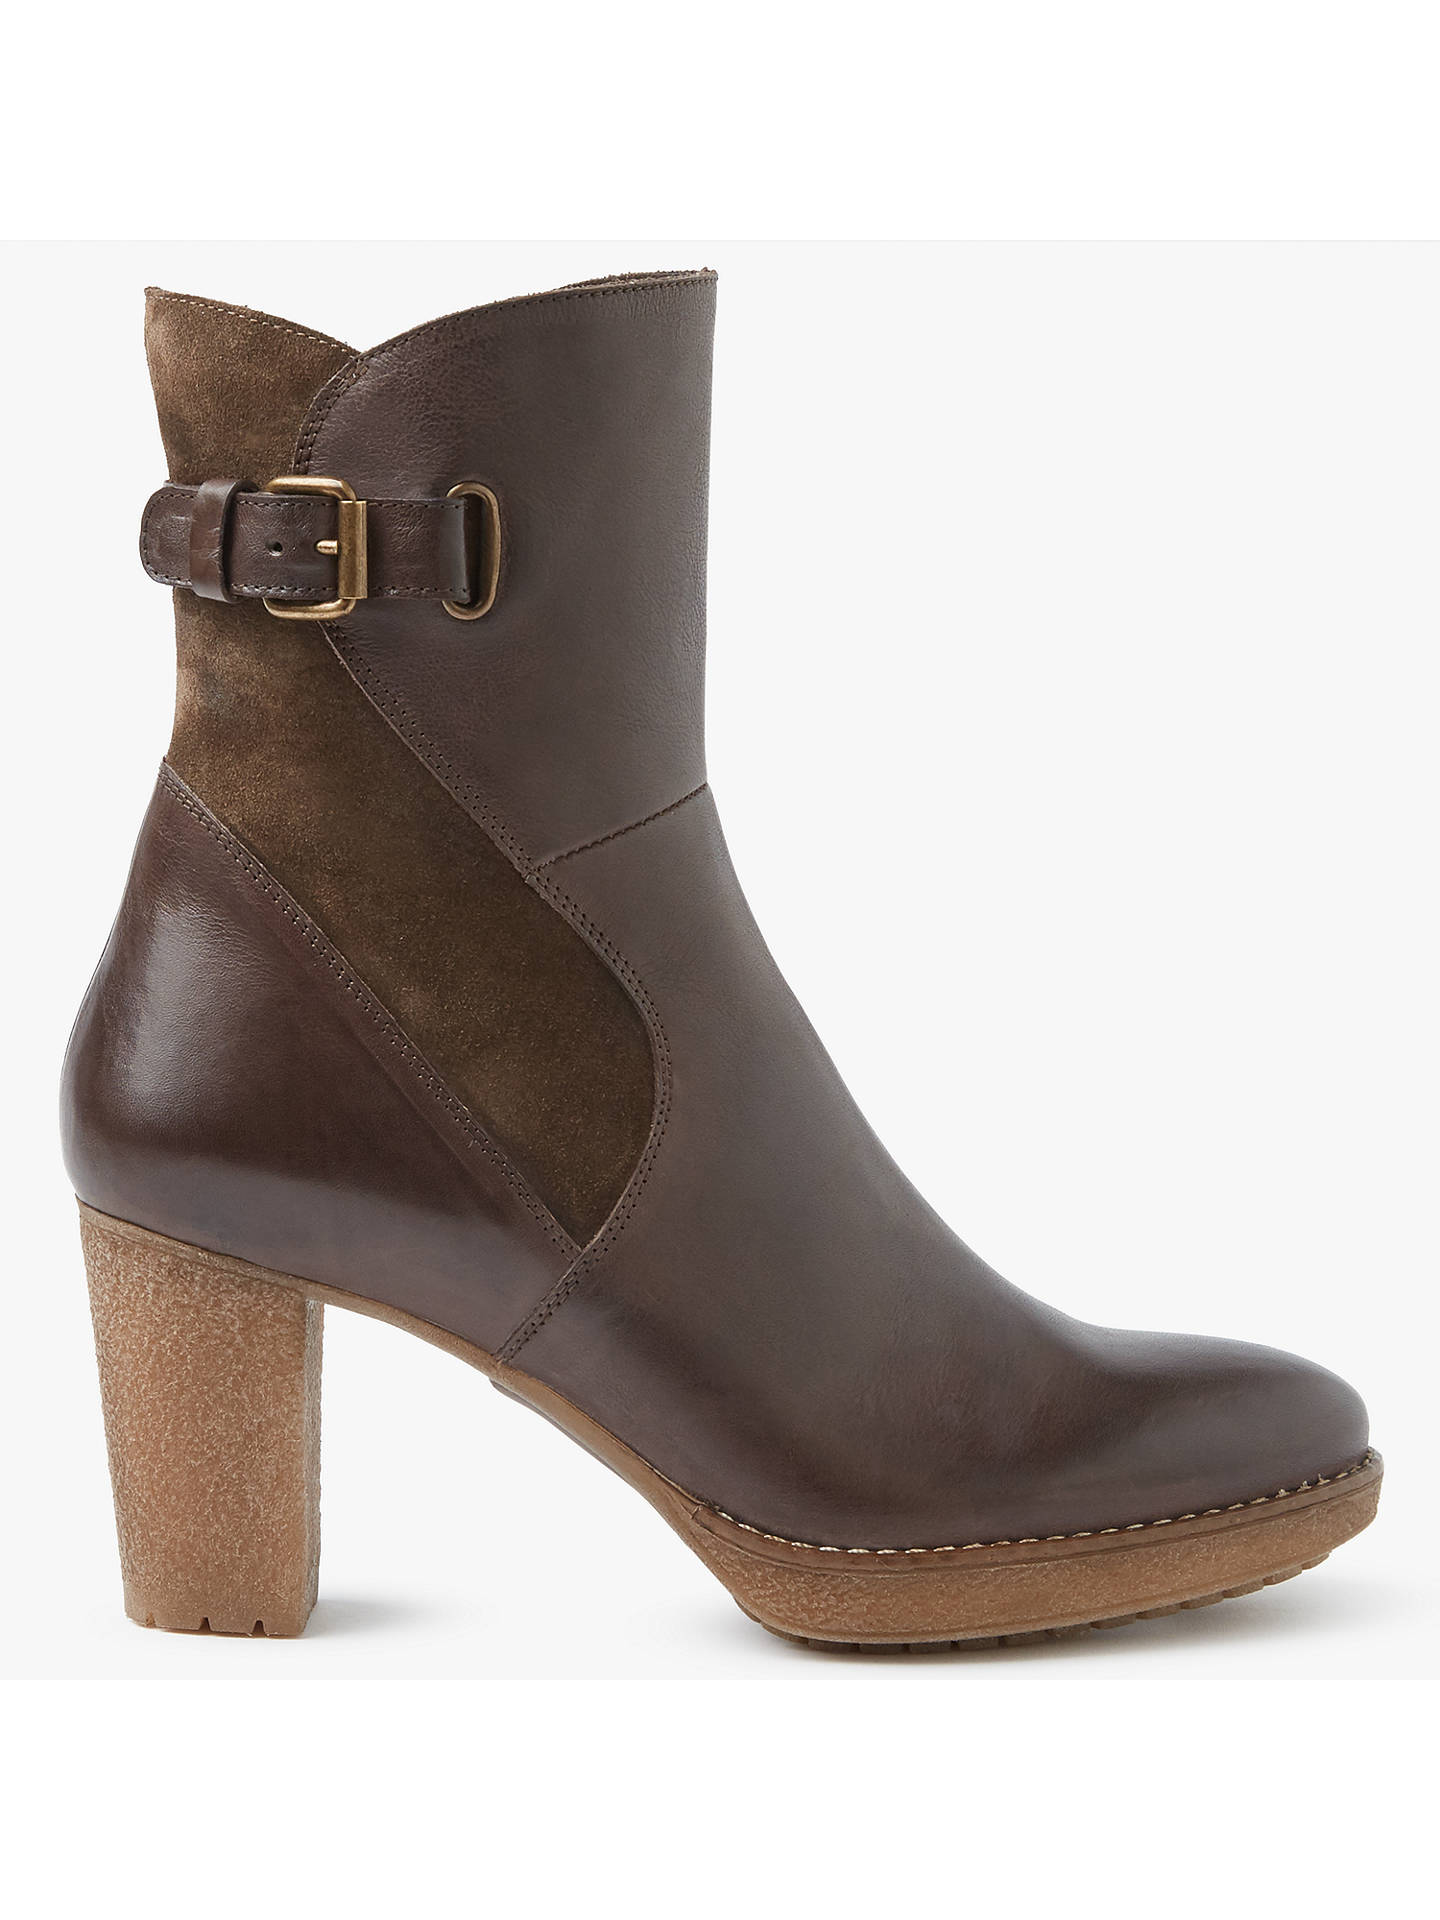 1430fea40eb9 Buy John Lewis   Partners Pinky Block Heeled Ankle Boots